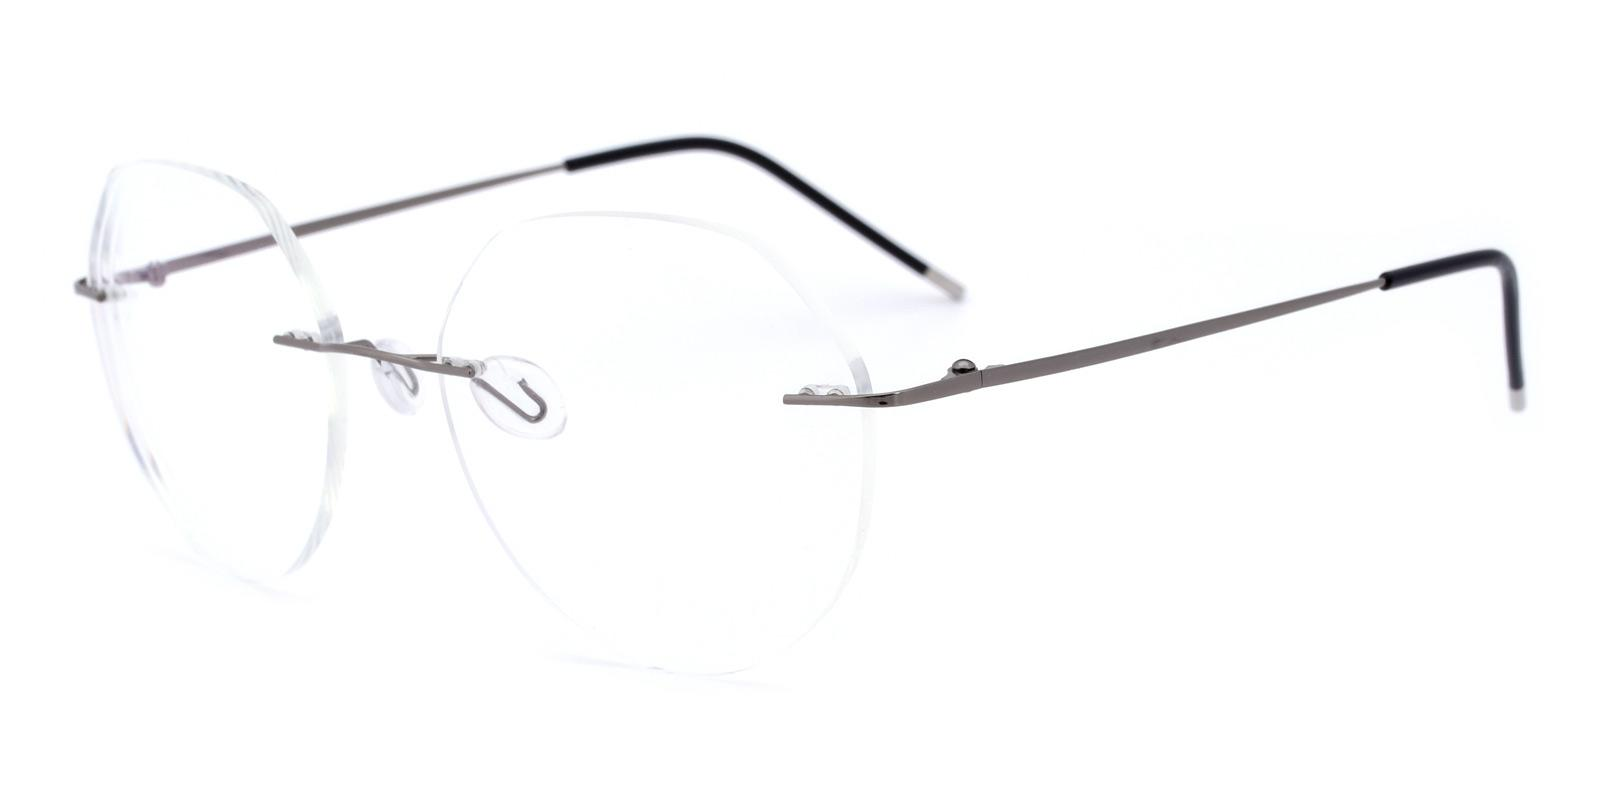 Invisible-Silver-Round-Metal-Eyeglasses-detail